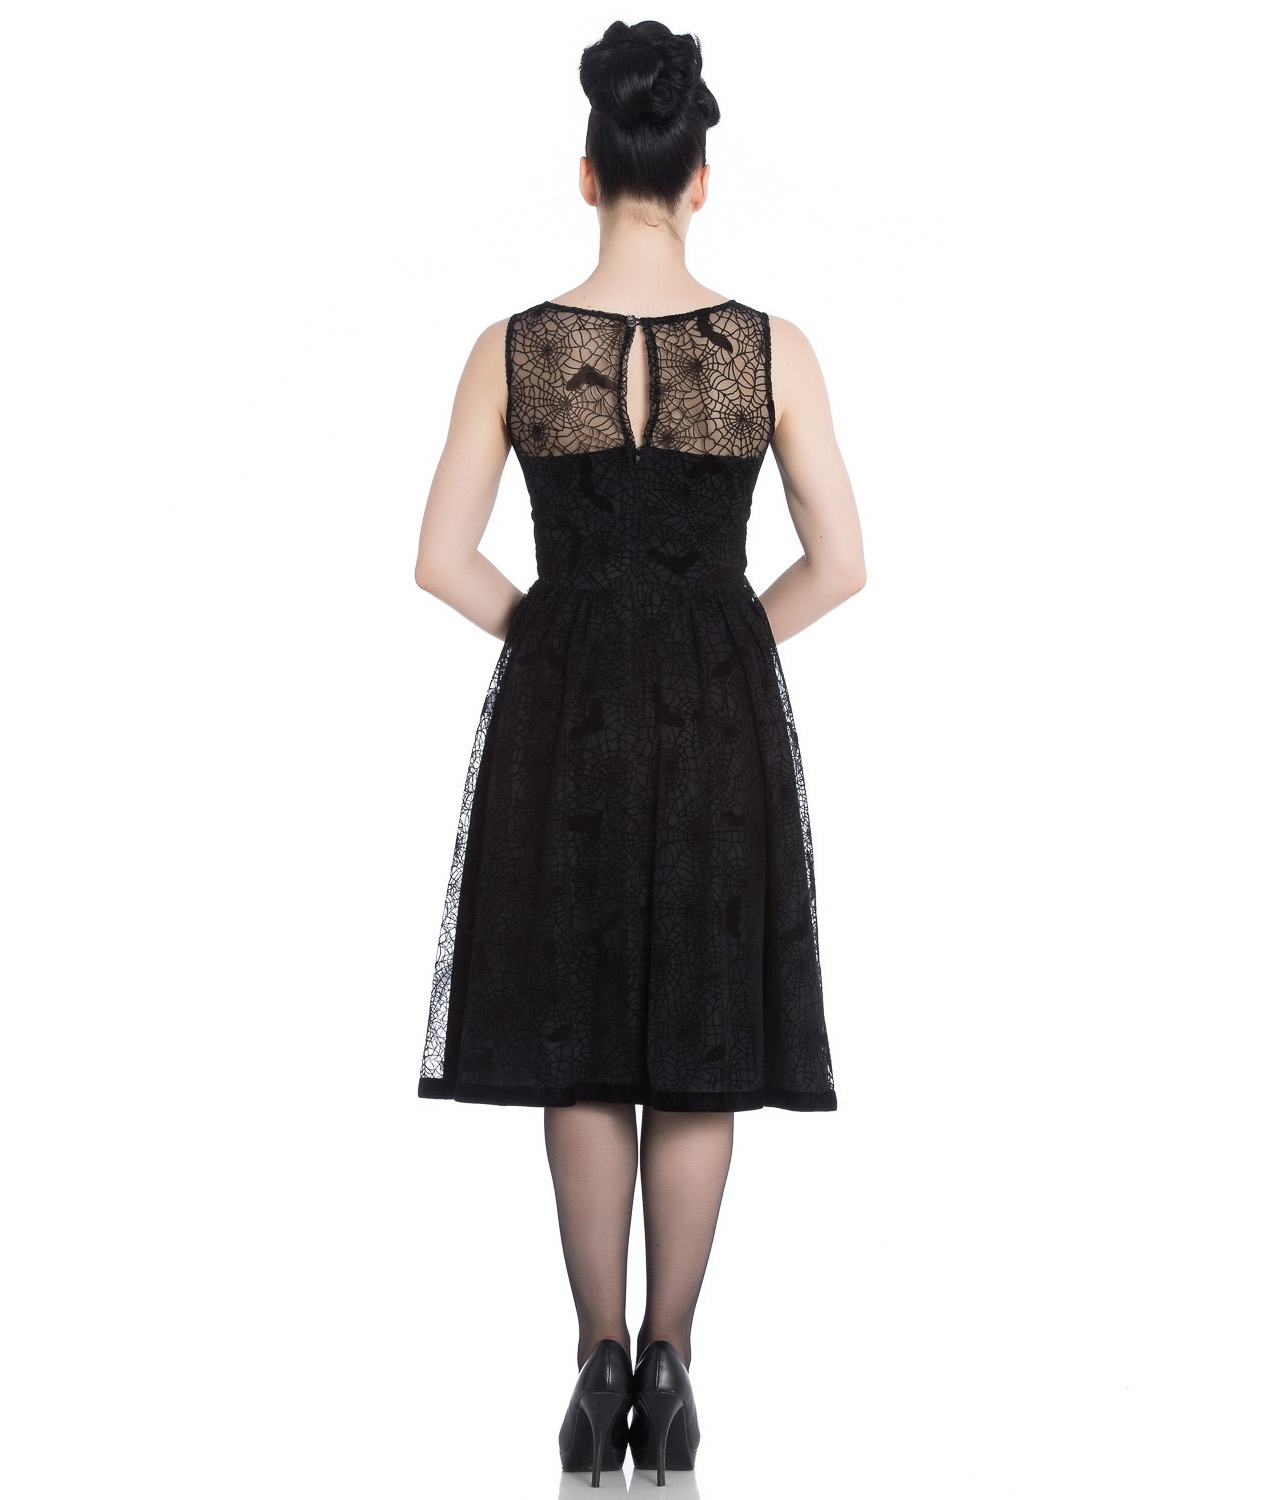 Hell-Bunny-50s-Black-Gothic-Net-Dress-Witchy-AMARANDE-Spiders-Bats-All-Sizes thumbnail 13